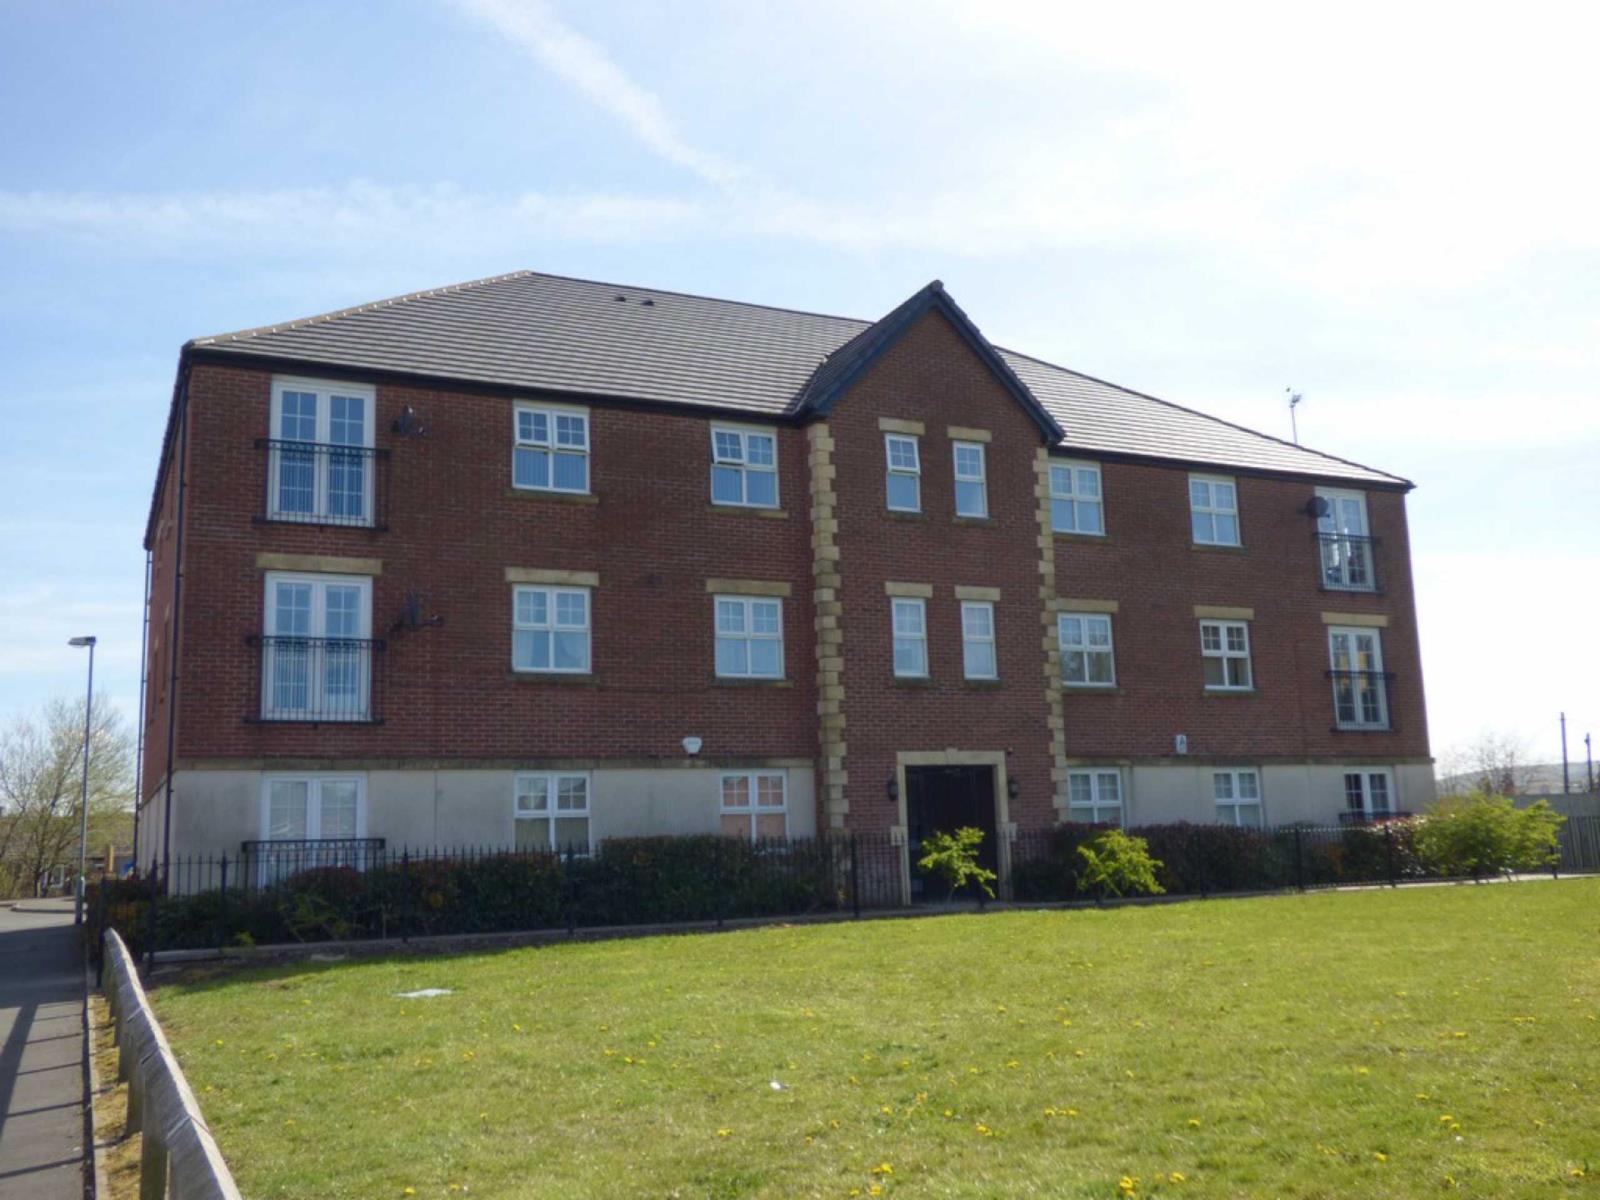 2 Bedrooms Apartment Flat for sale in Newbold Hall Drive, Rochdale, Lancashire, OL16